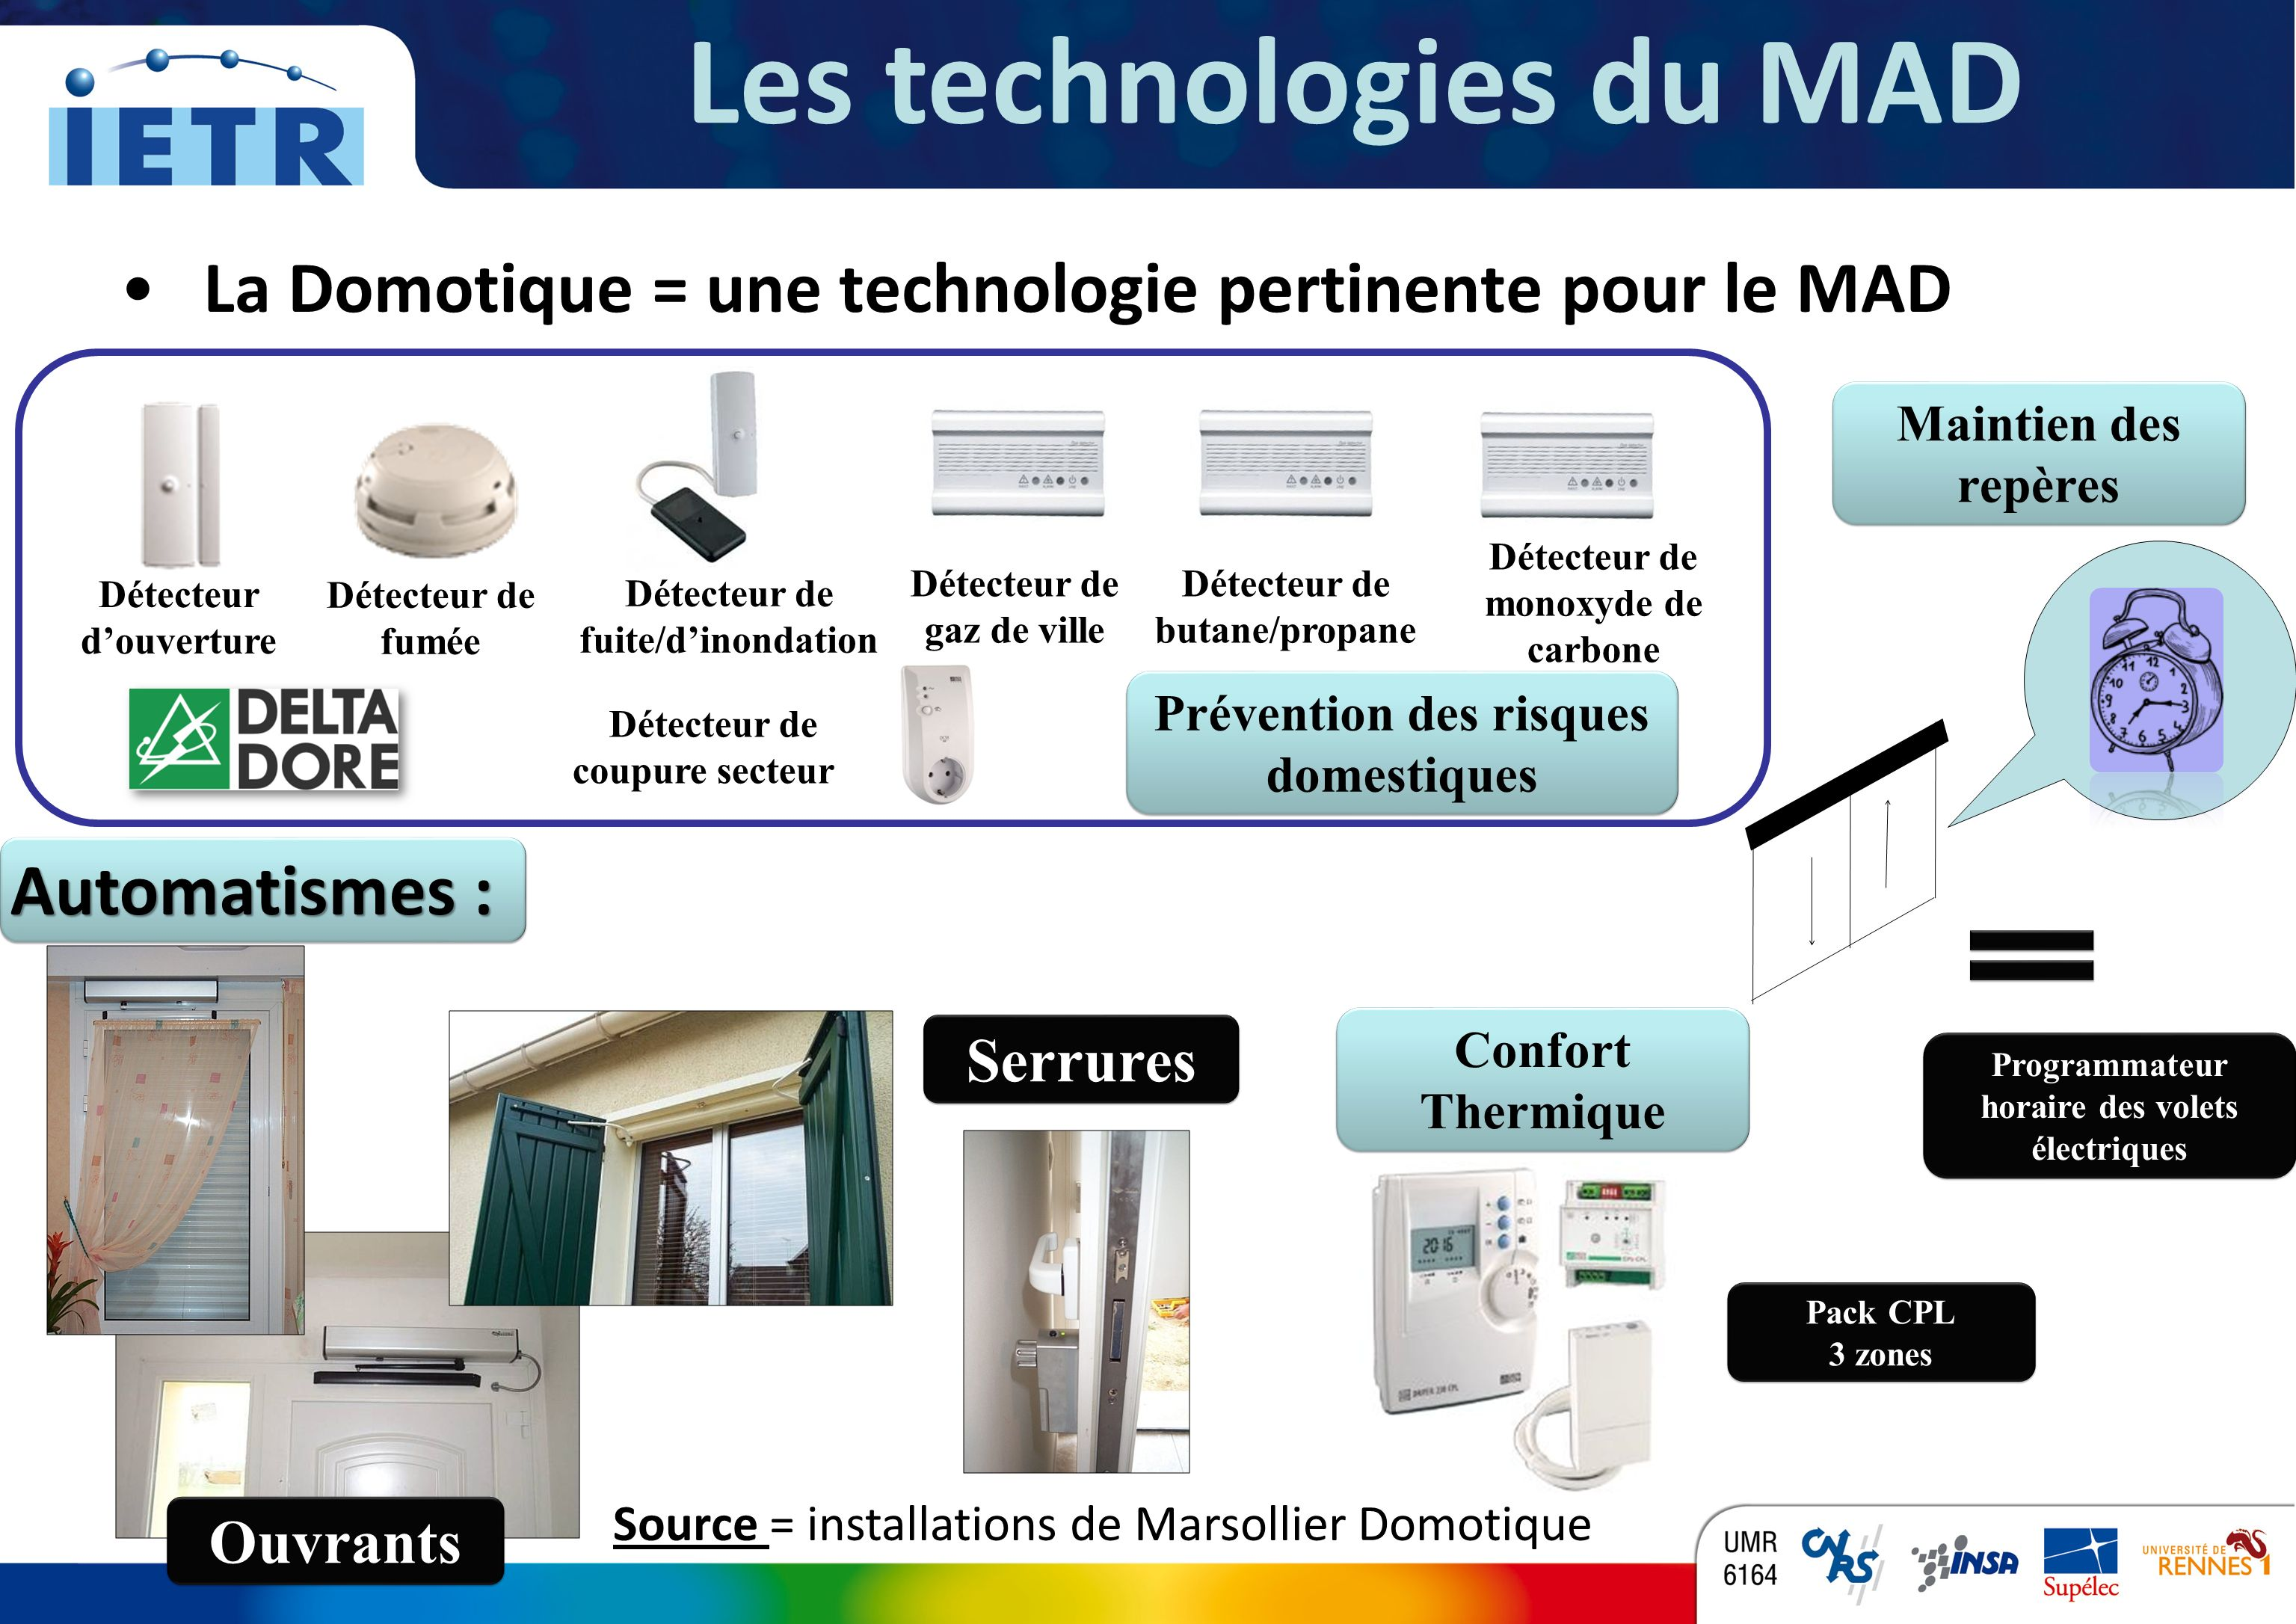 Les technologies du MAD